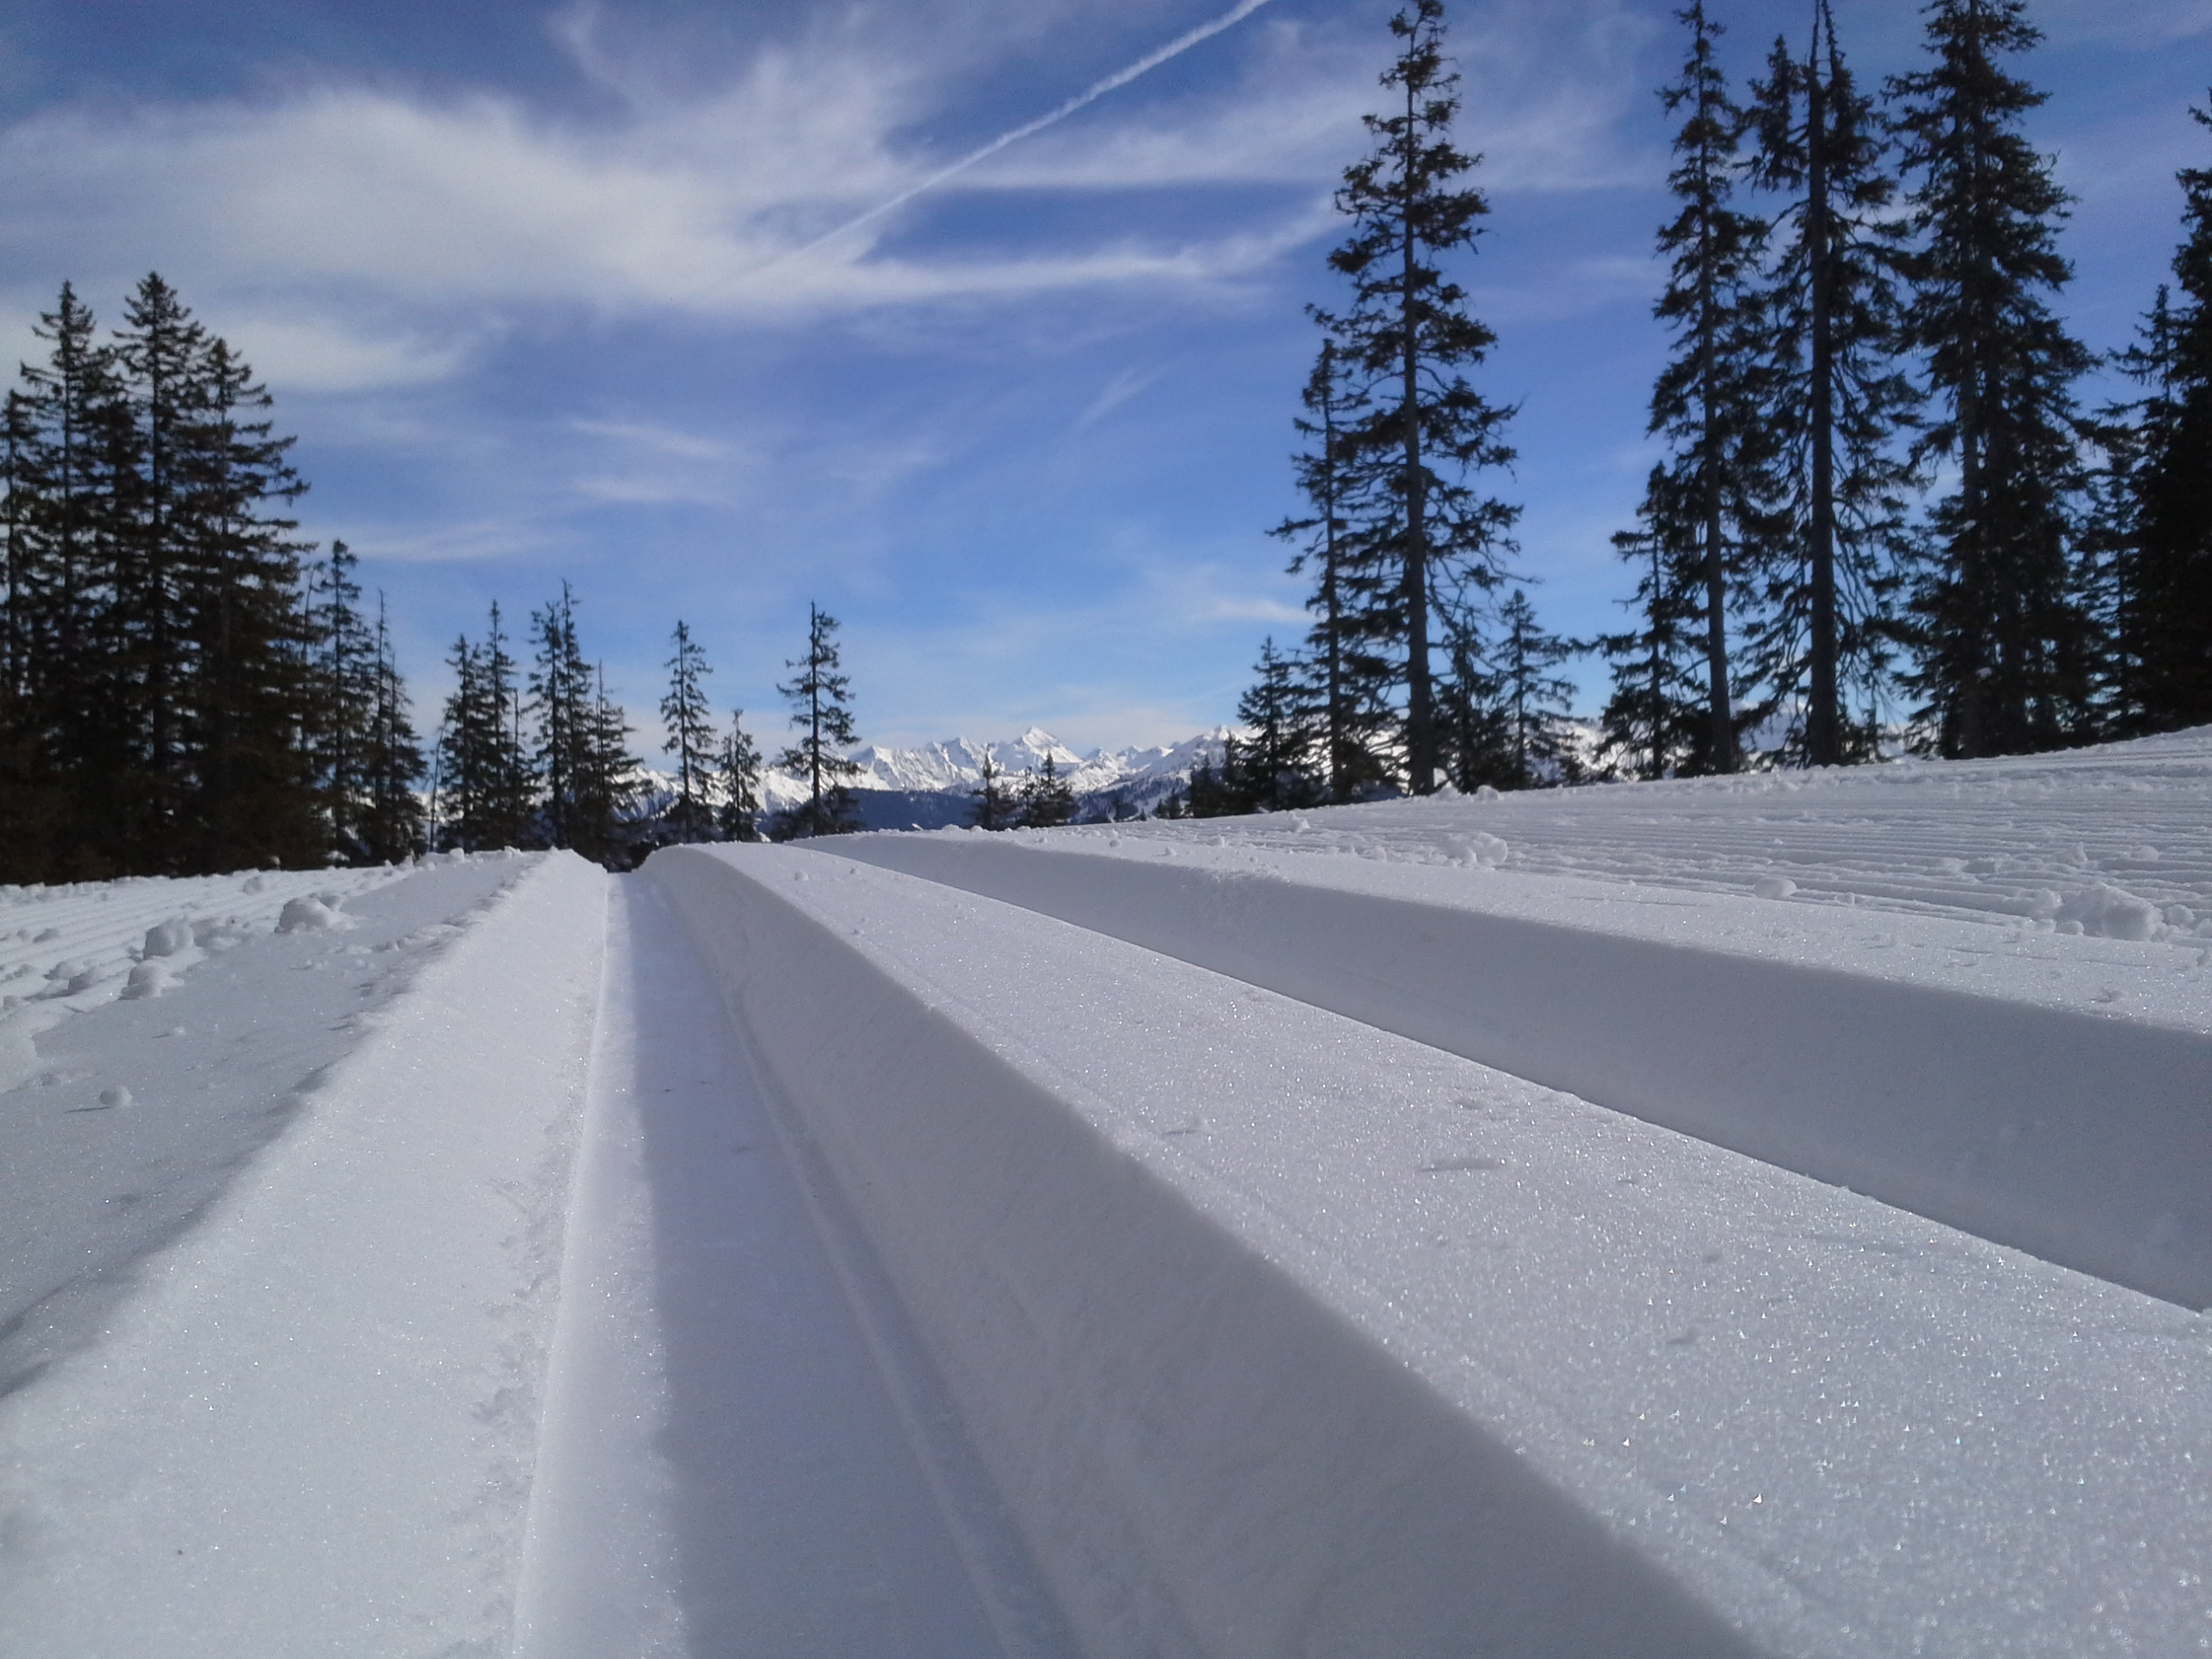 The route was prepared really well. Because we had to take a lift (11EUR) uphill, there were not so many people skiing.